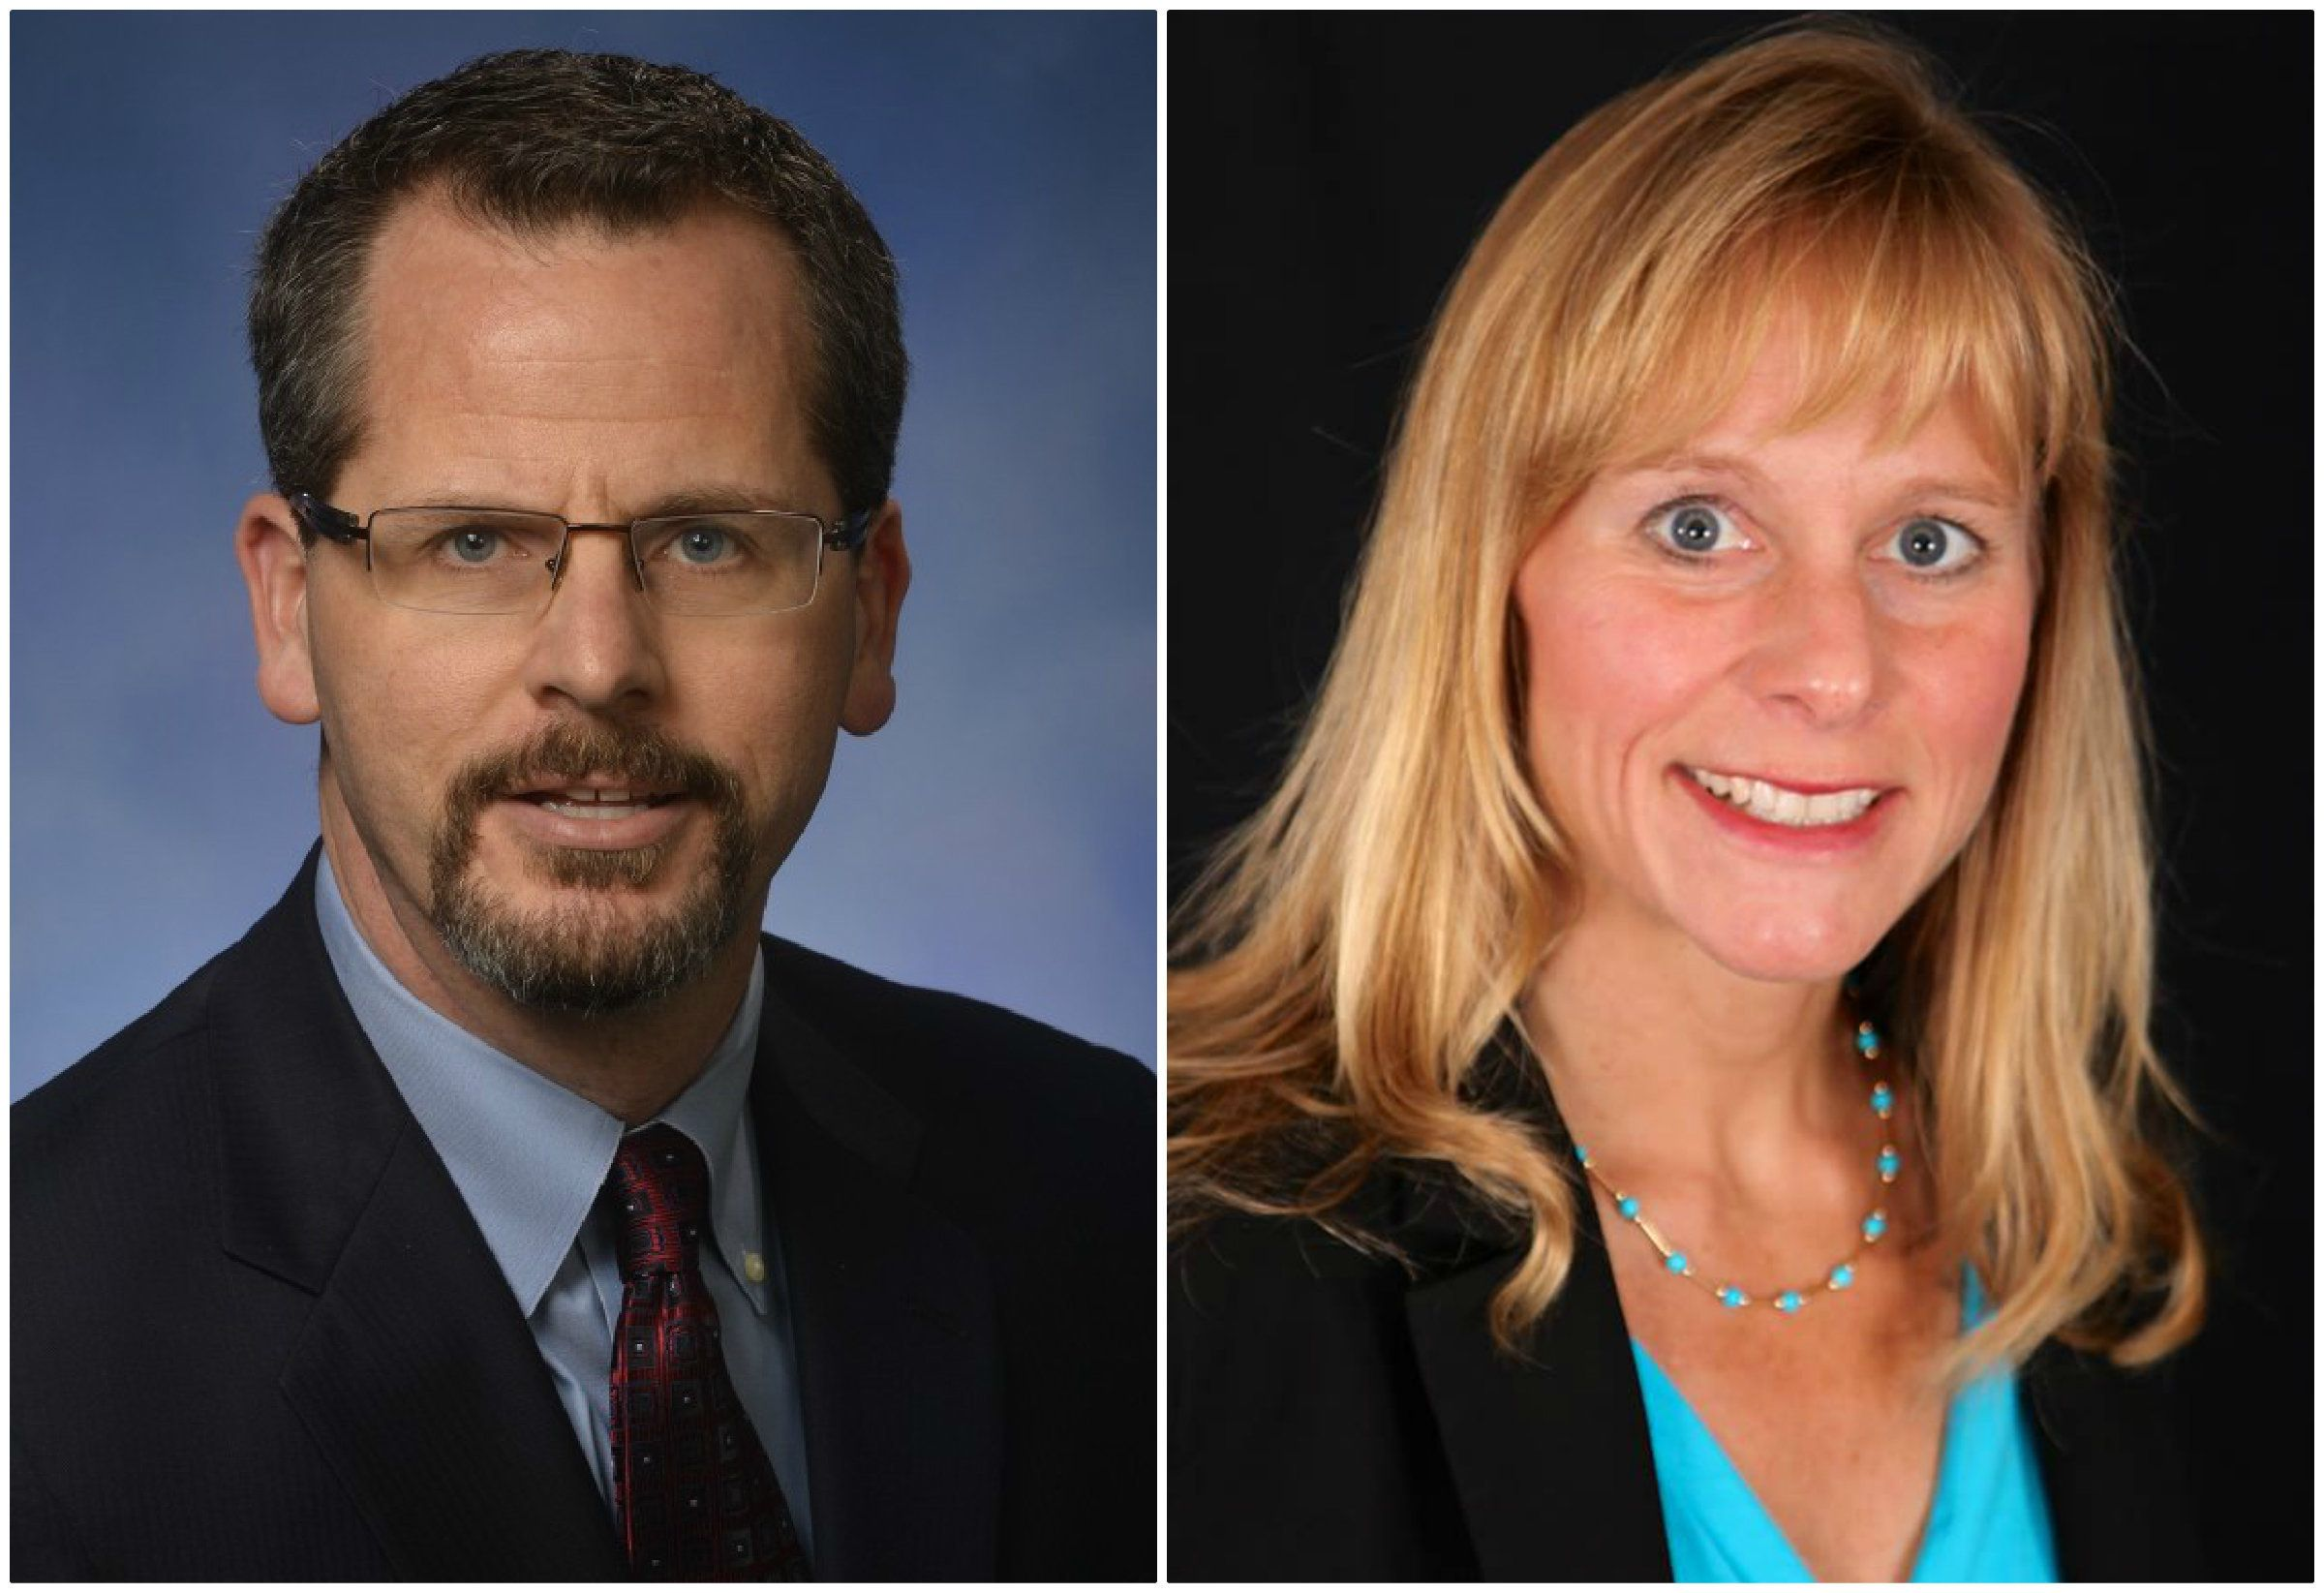 Michigan tea party state House Rep. Todd Courser resigned overnight over a sex scandal and coverup involving Rep. Cindy Gamrat. She was expelled from office.